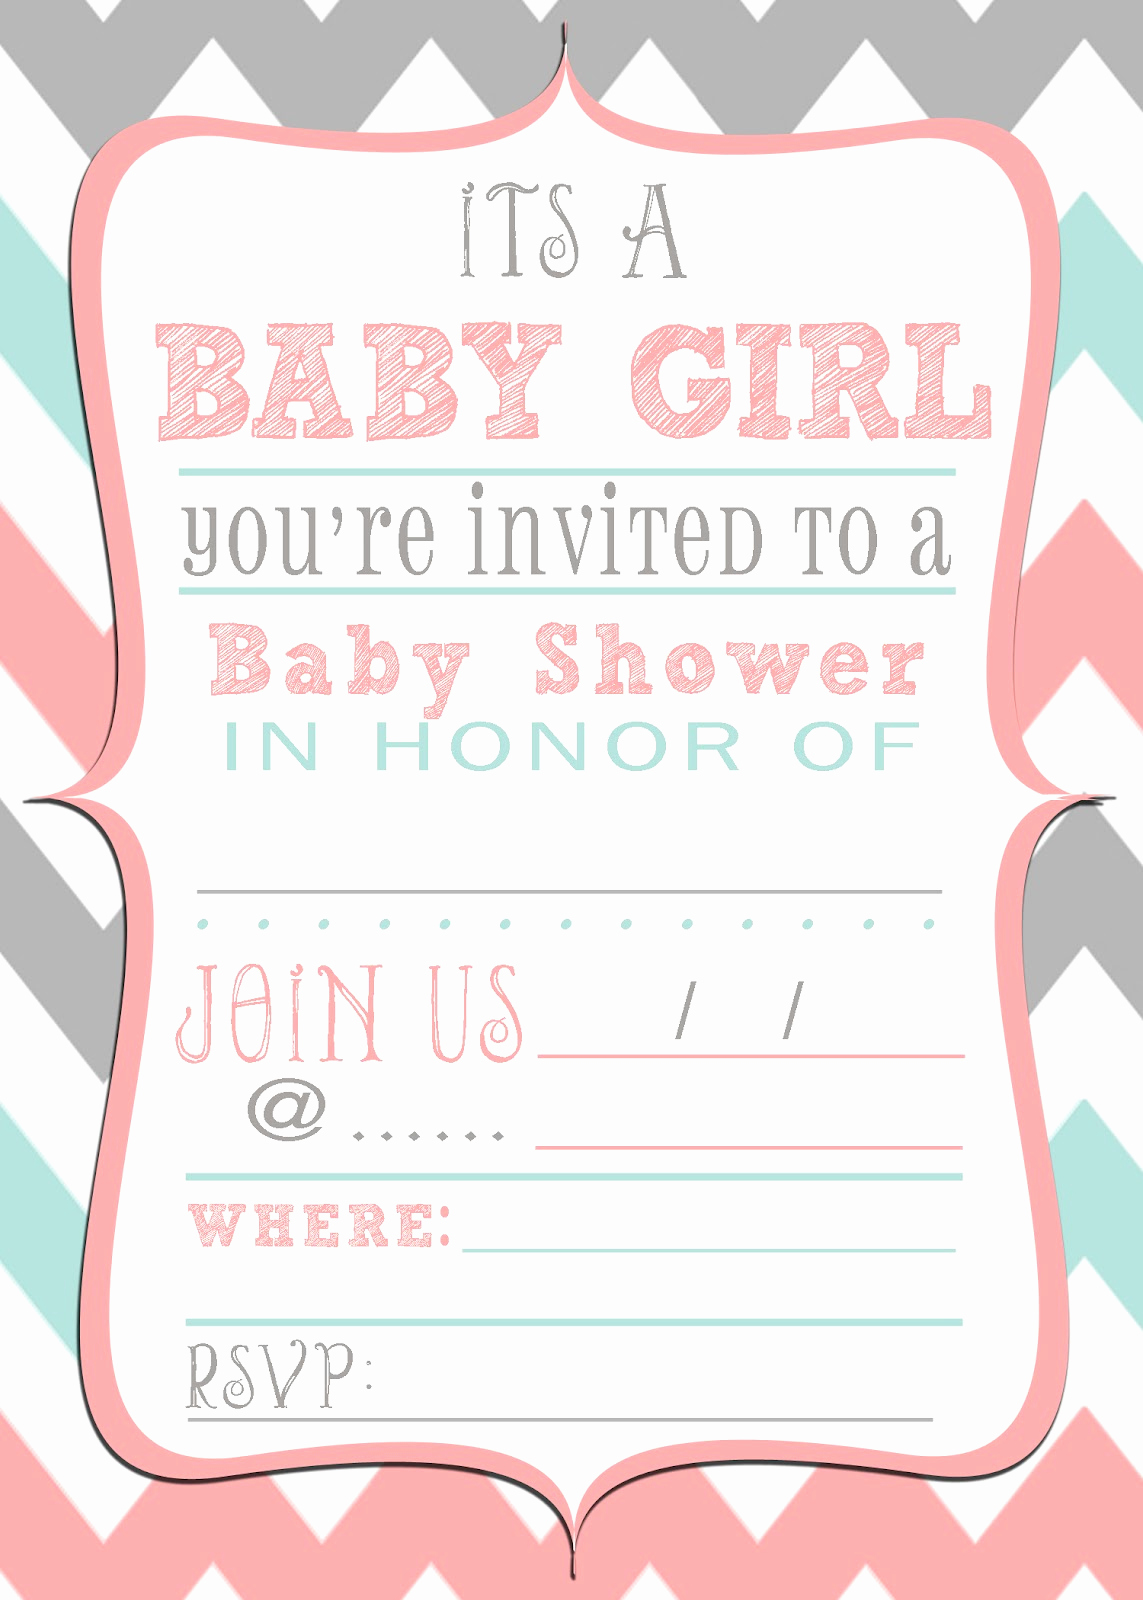 Baby Shower Invitation Examples Best Of Mrs This and that Baby Shower Banner Free Downloads